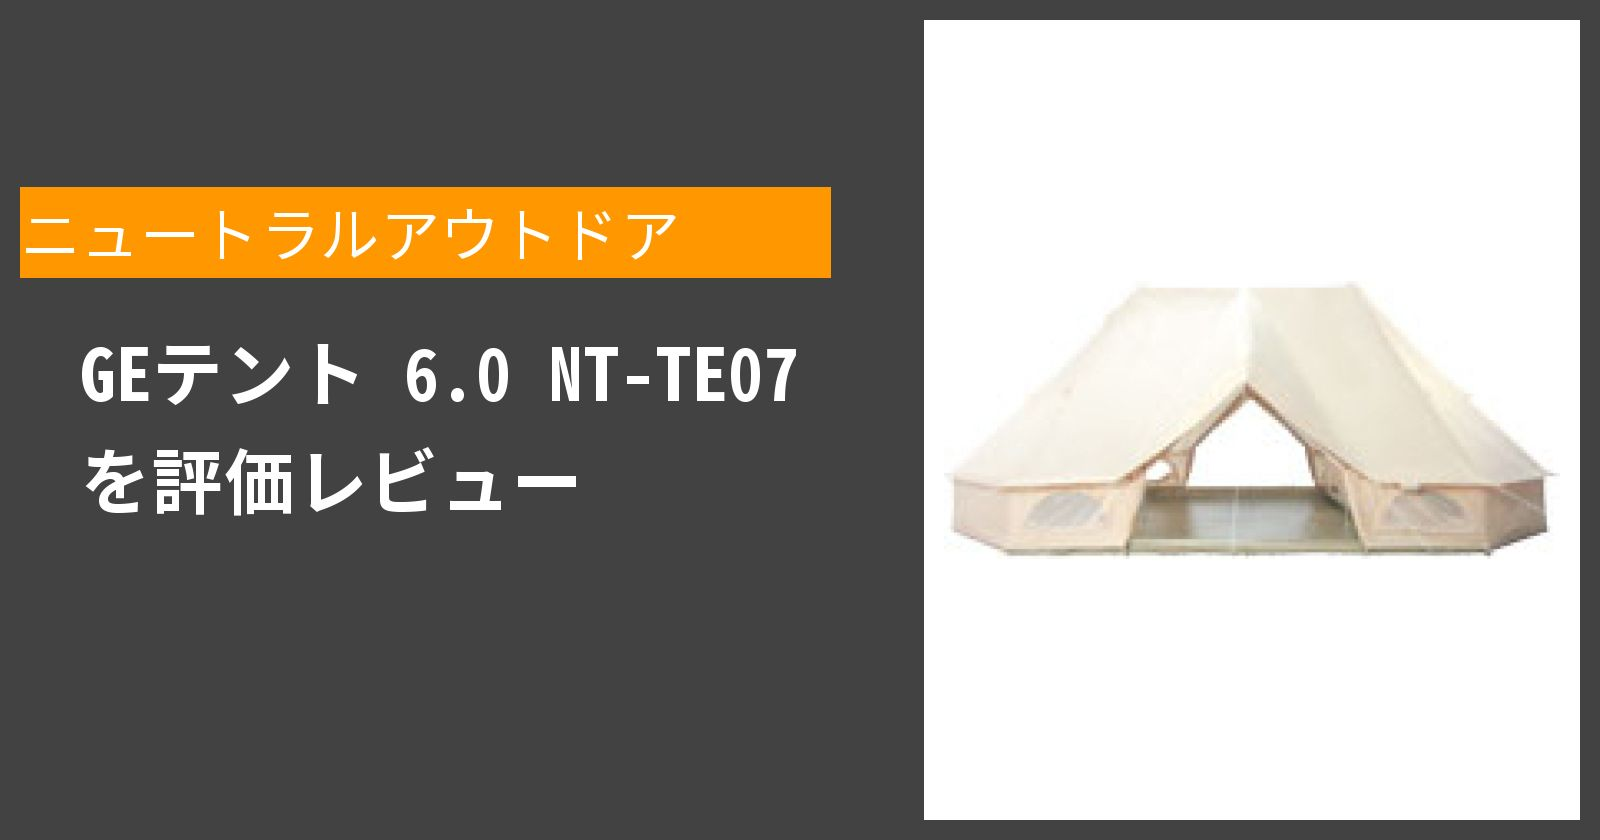 GEテント 6.0 NT-TE07を徹底評価